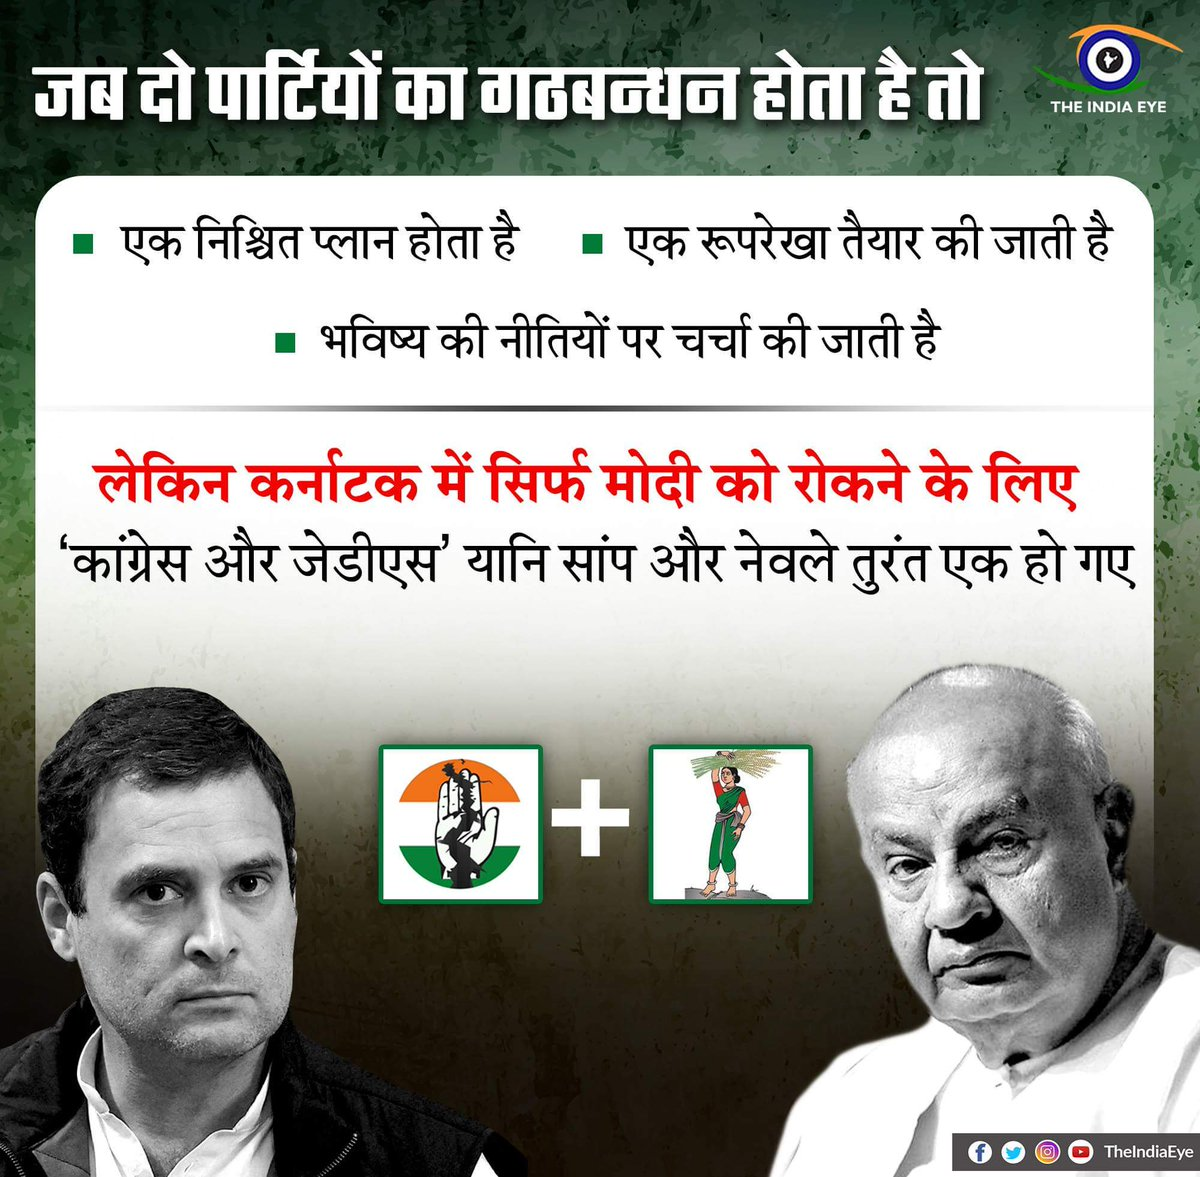 How two opposition party are joining hands to stop Modi But: They dont want development of people Taking support from Pakistan They ask for proof on surgical strike #KarnatakaTrustsModi #IndiaWithModi #KarnatakaVerdict #KarnatakaCMRace #BSYNammaCM #BSYeddyurappa